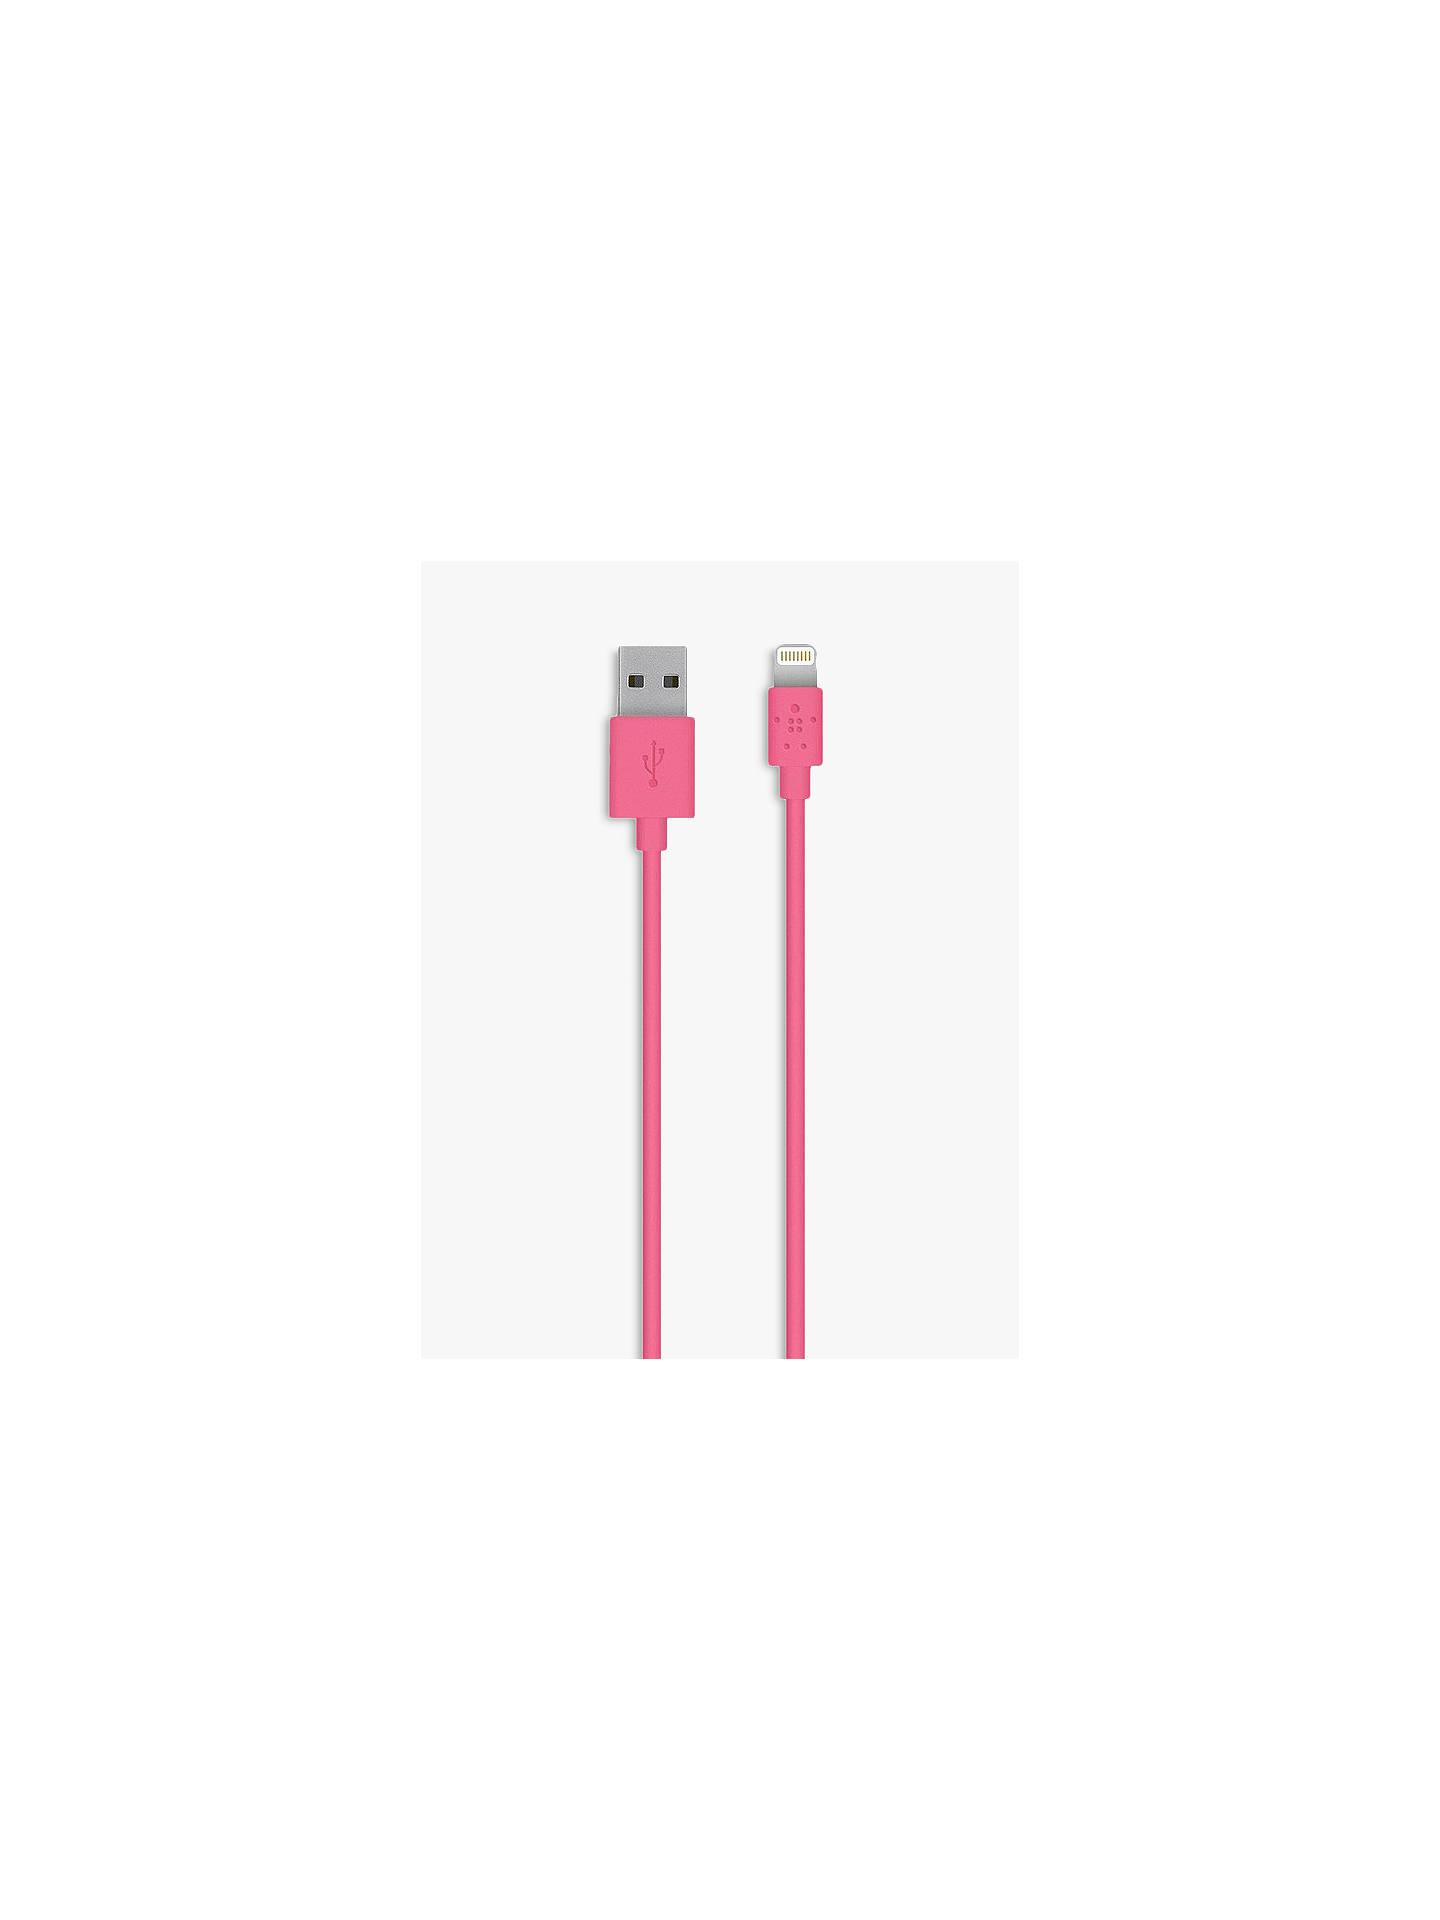 BuyBelkin MIXIT ↑ Lightning to USB Cable, Pink Online at johnlewis.com